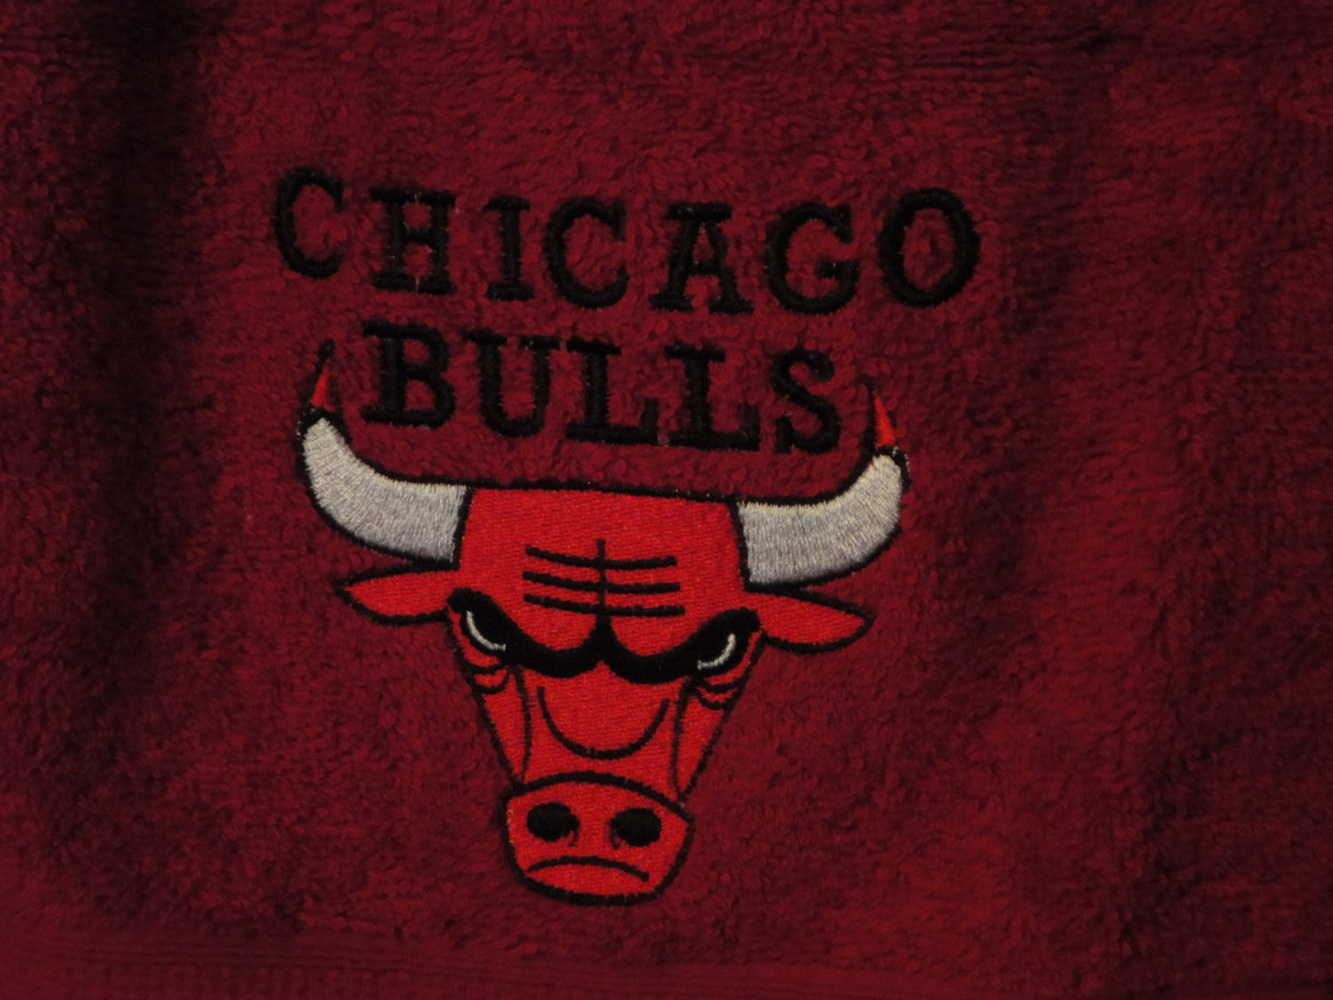 Embroidered Chicago Bulls logo on towel